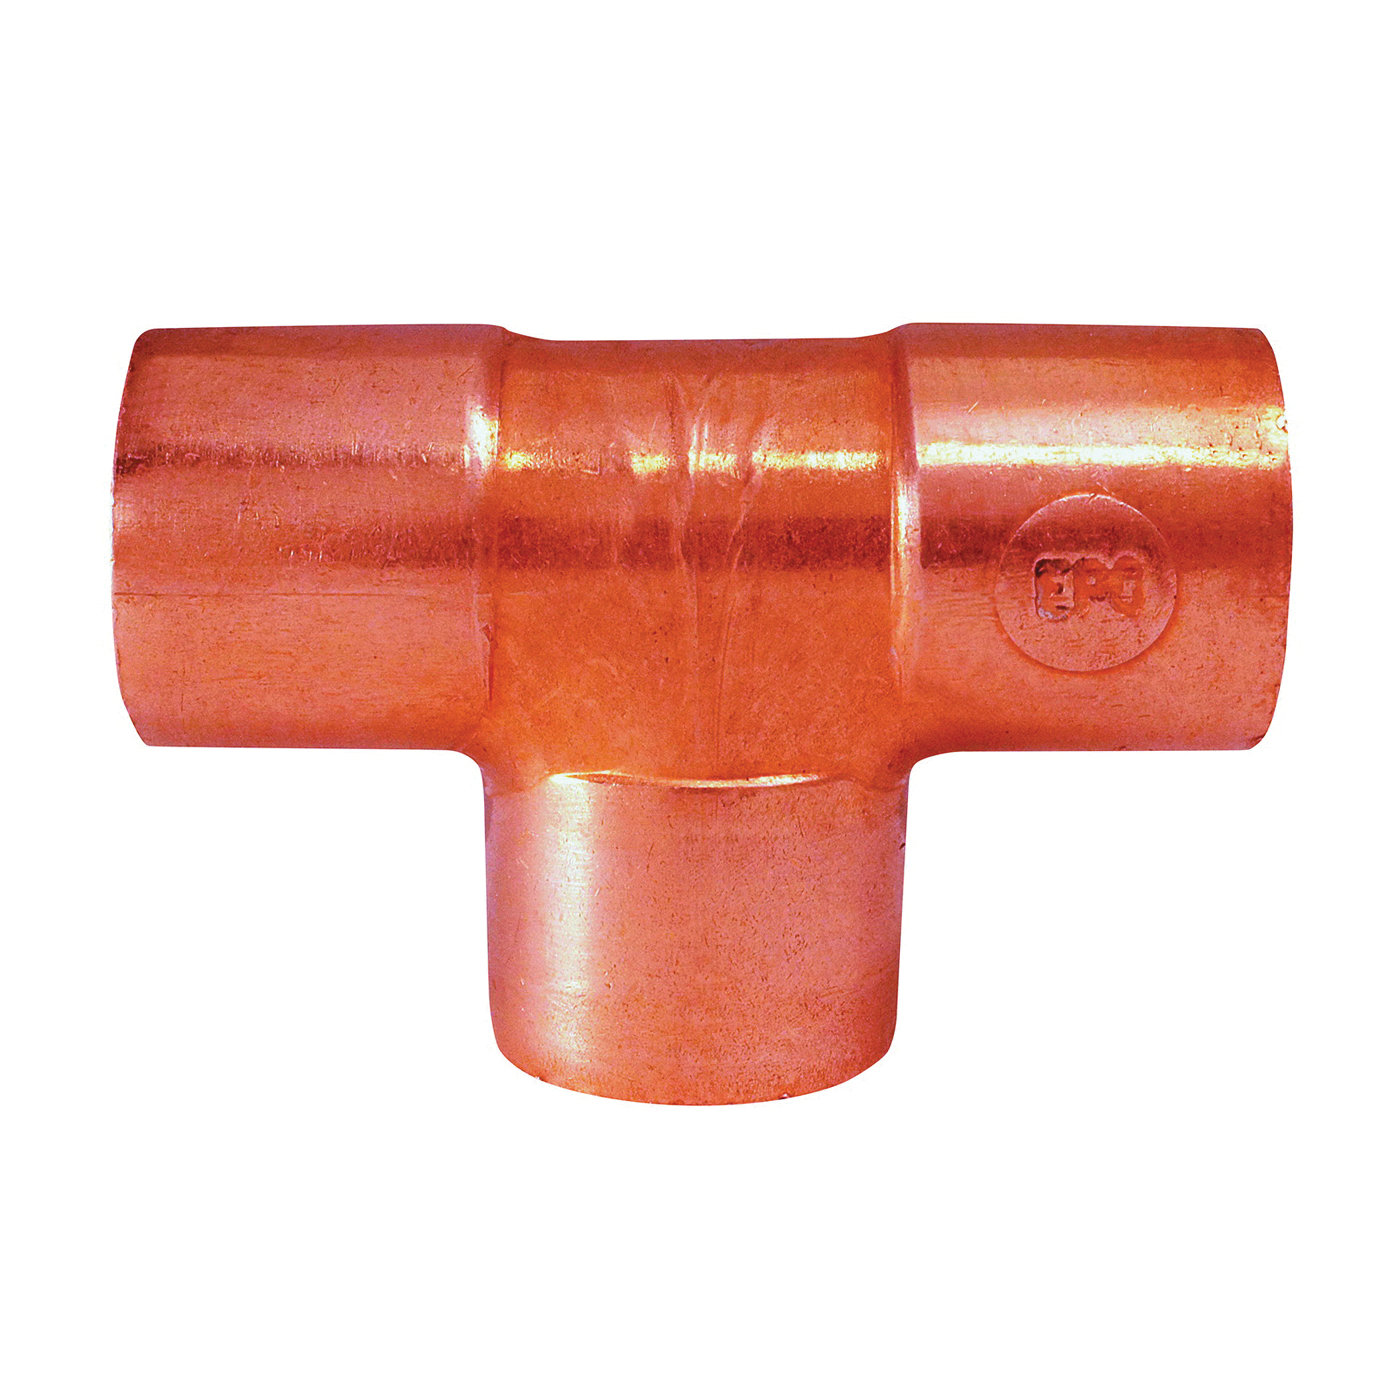 Picture of EPC 111 32866 Pipe Tee, 1-1/4 in, Sweat, Copper